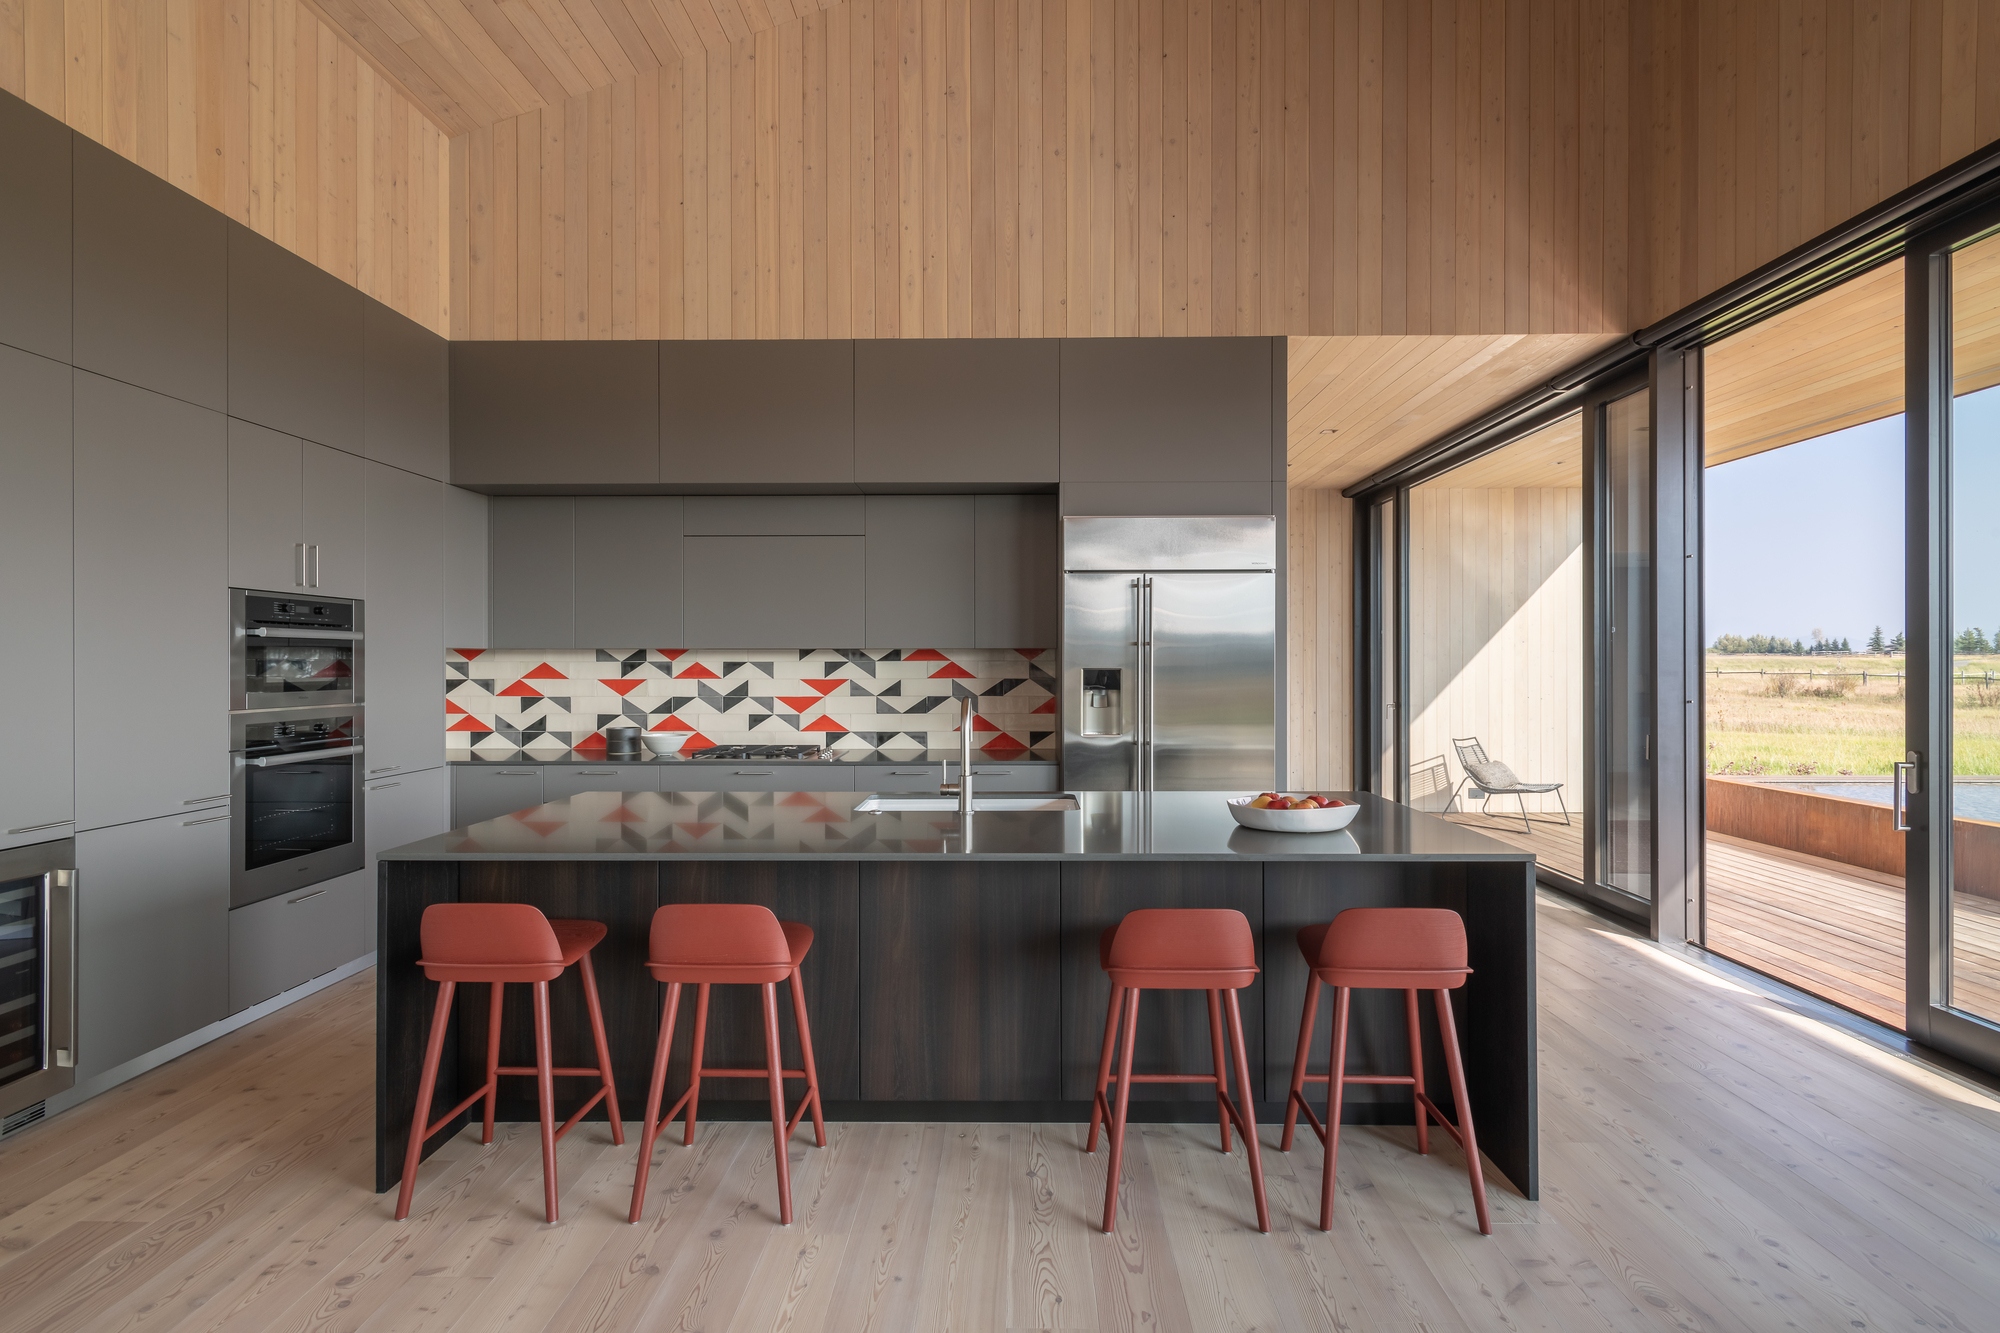 Light-dark-and-wooden-elements-intertwined-beautifully-in-the-spacious-kitchen-15646